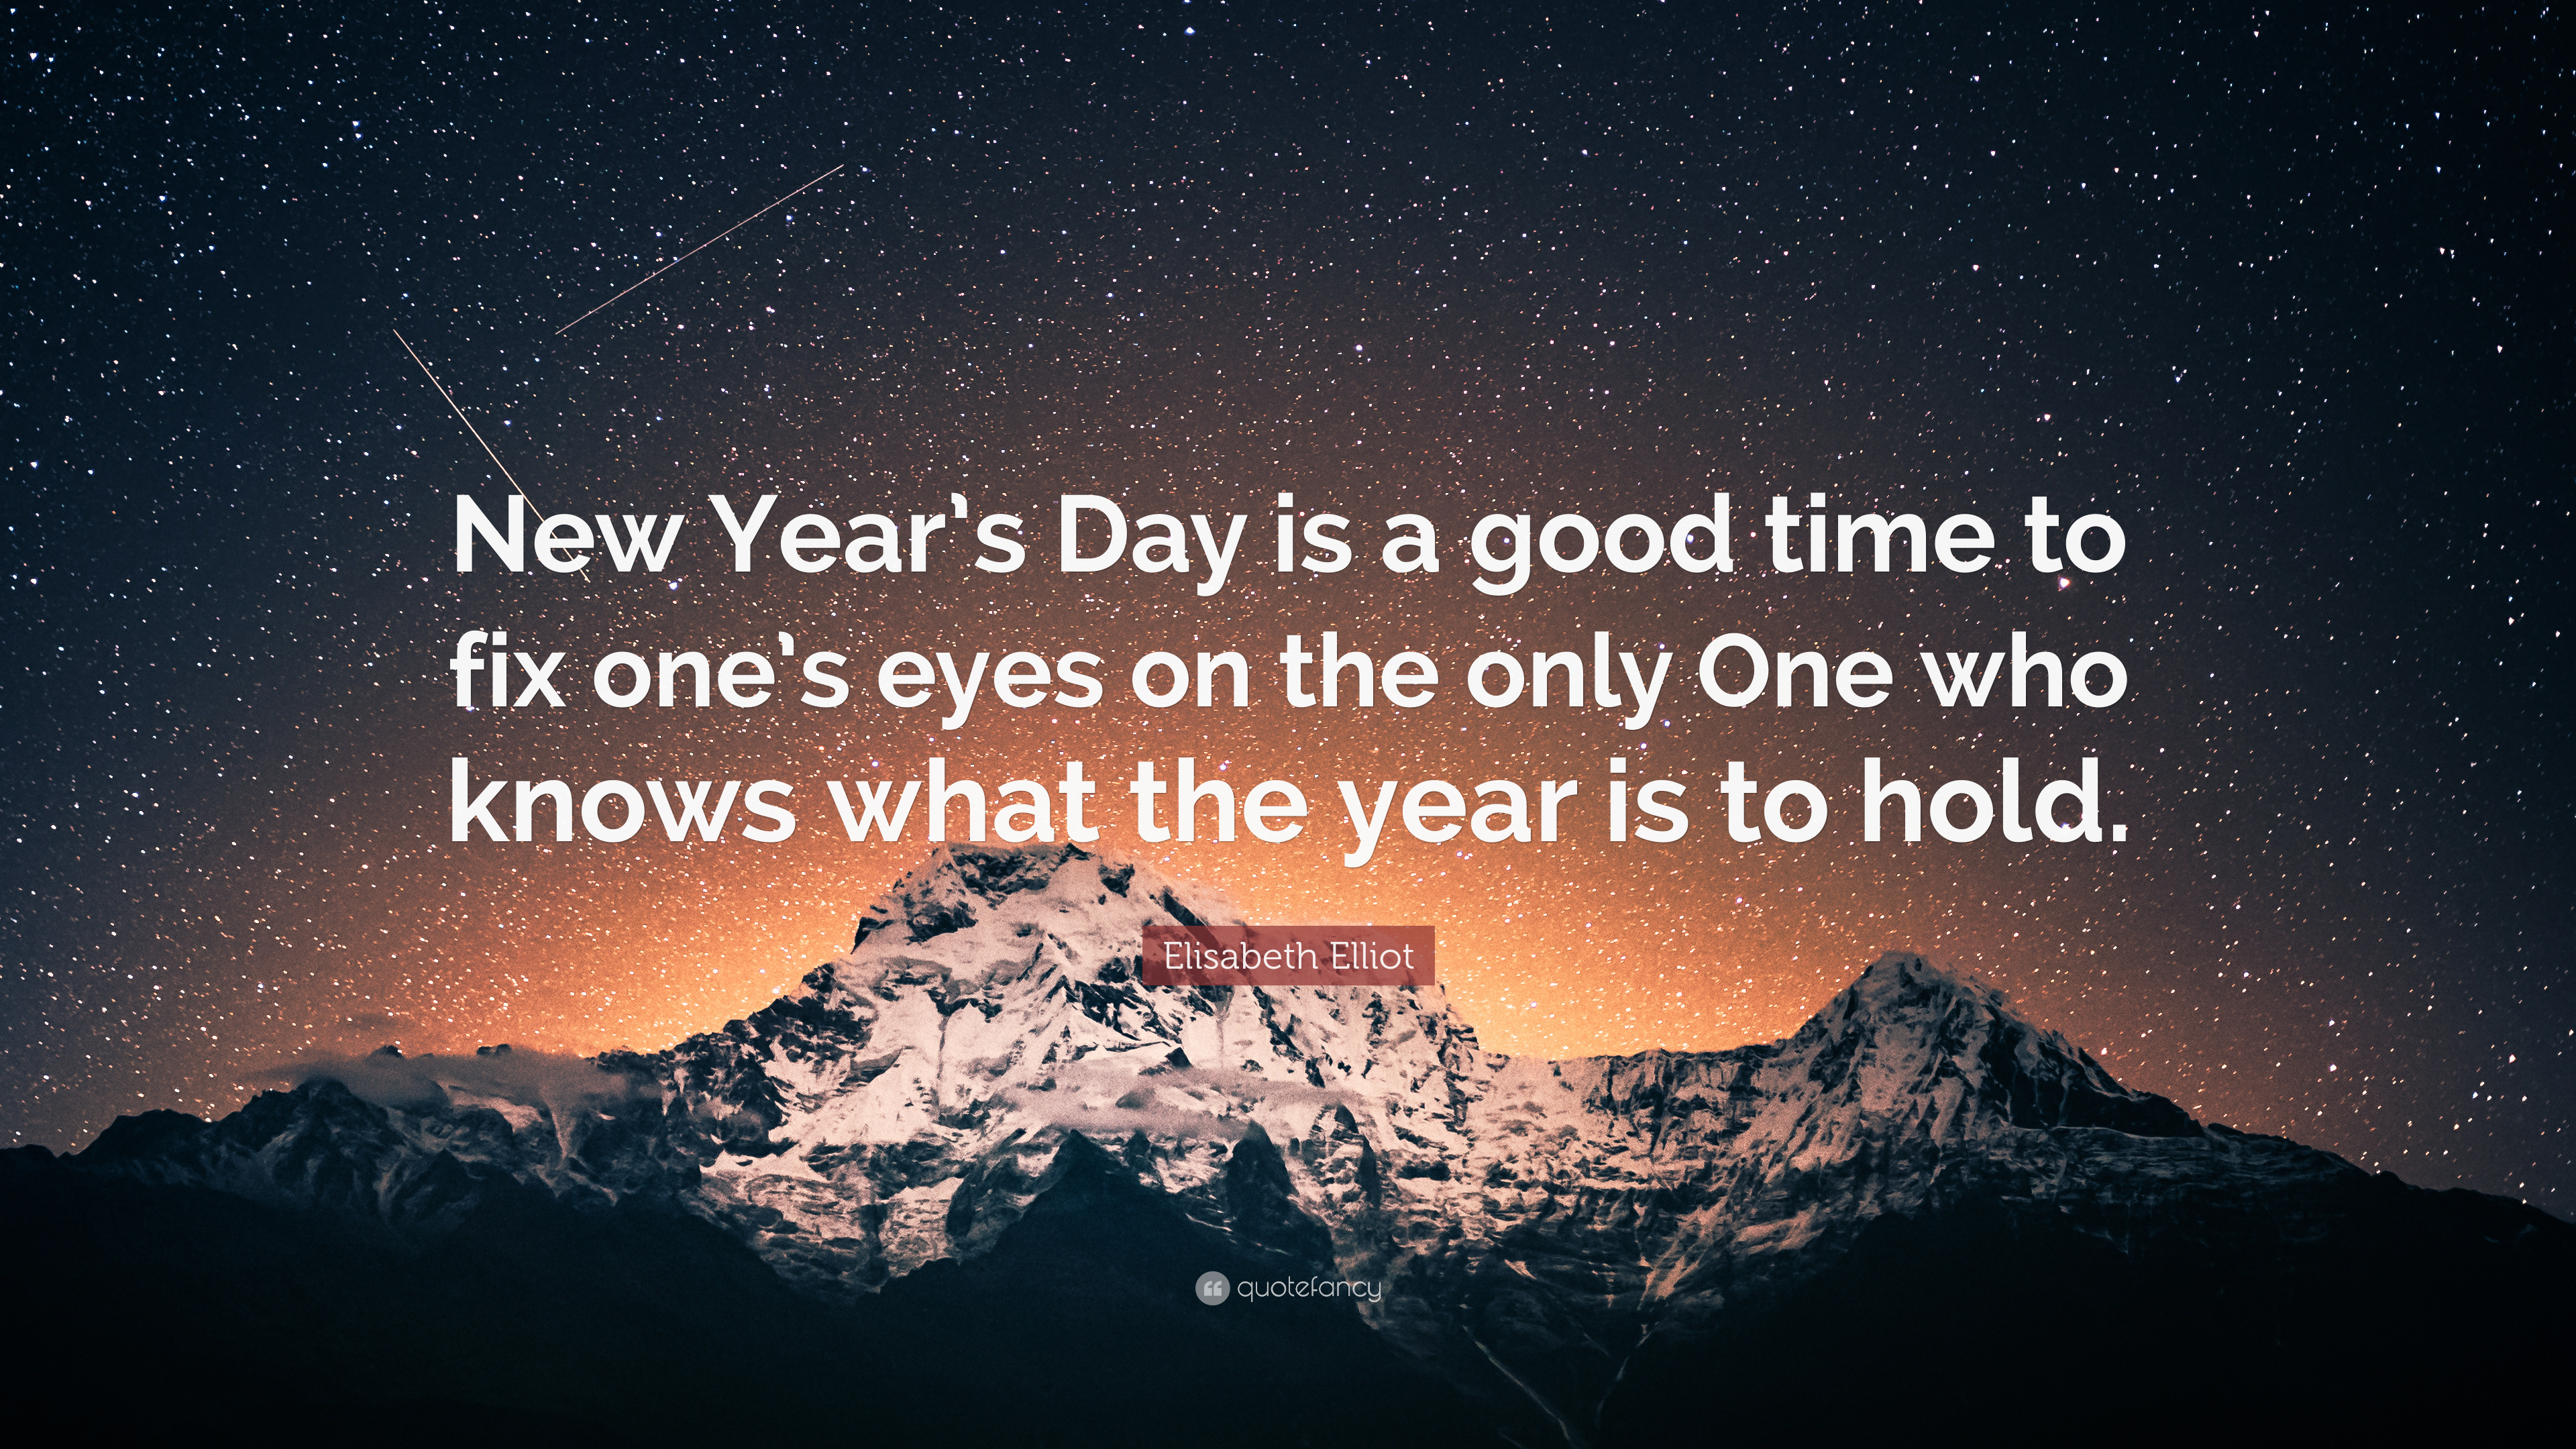 elisabeth elliot quote new years day is a good time to fix ones eyes